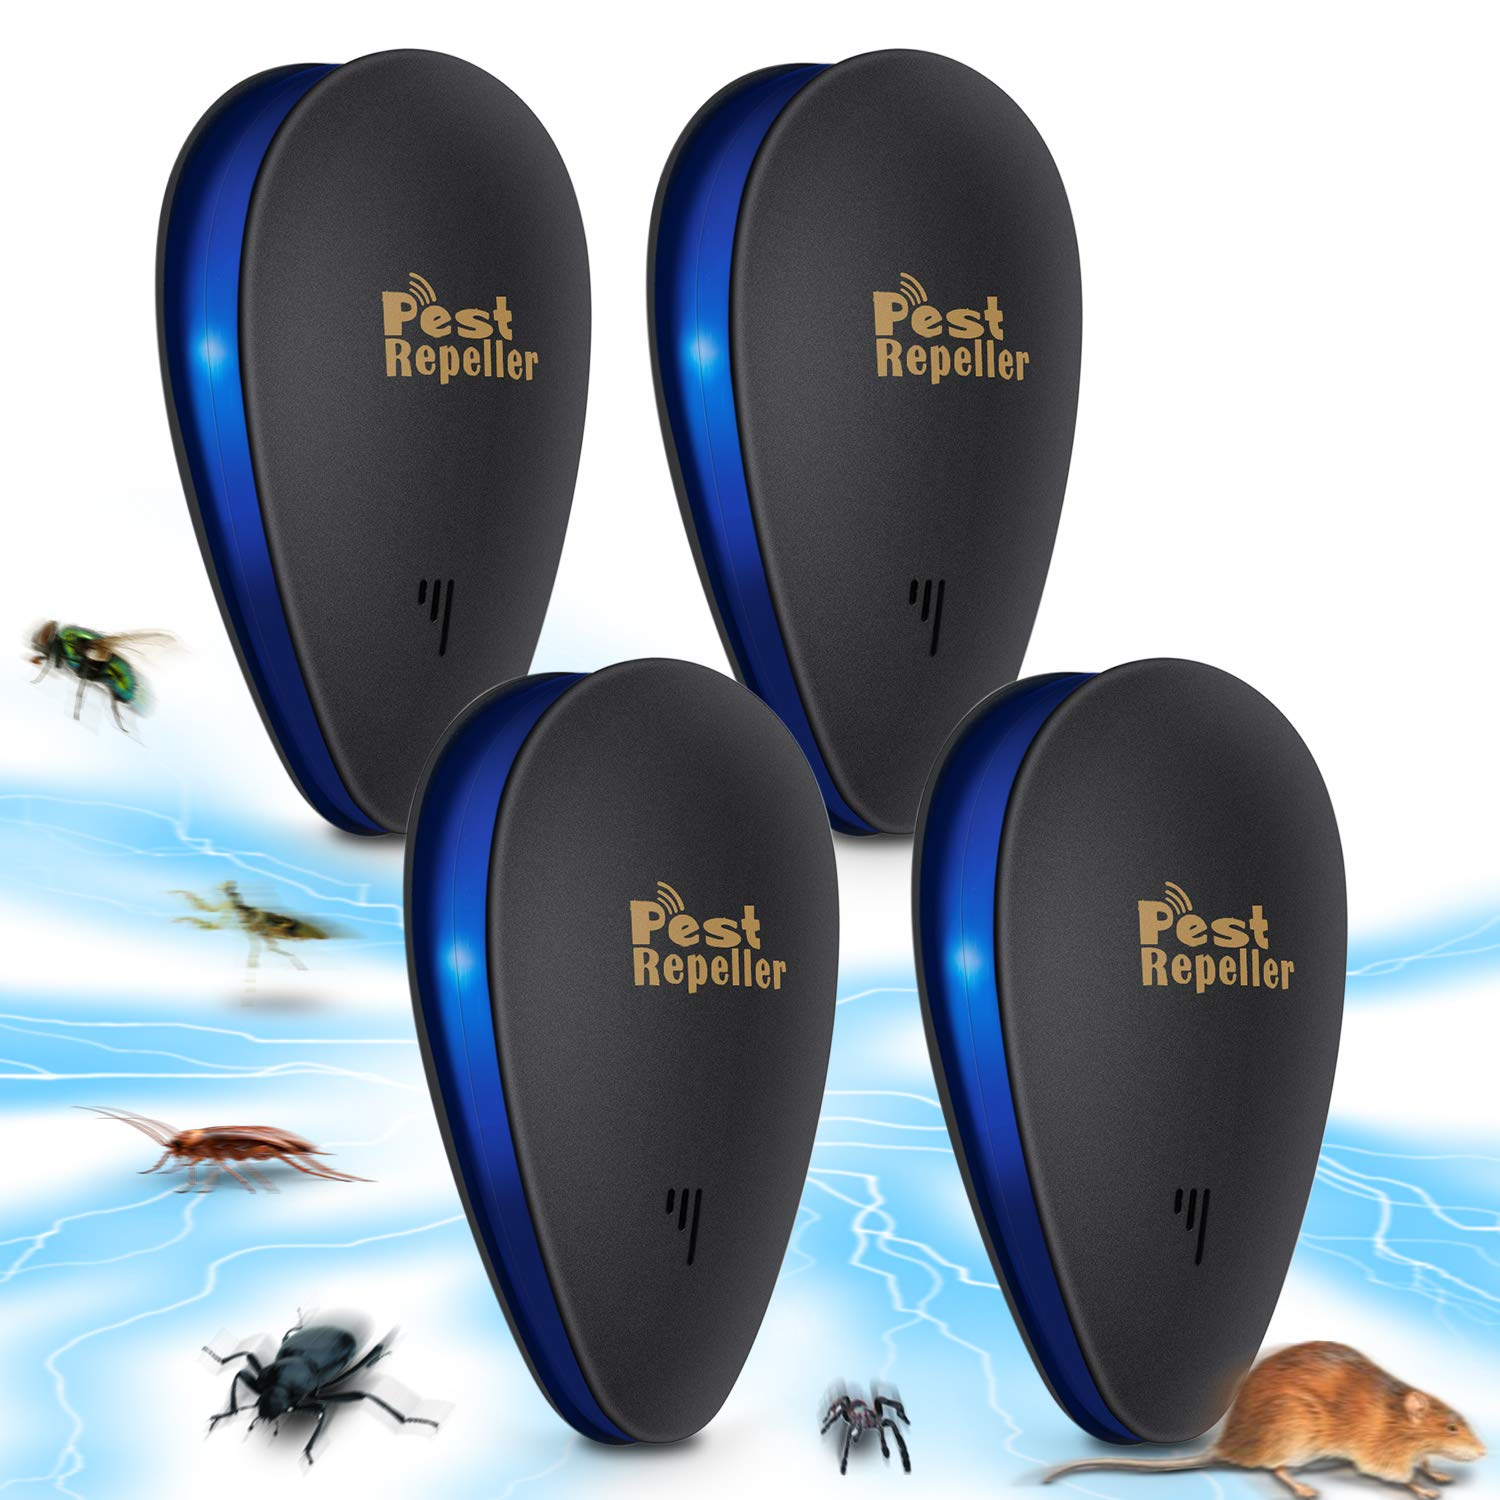 Pest Repeller Ultrasonic Electronic Pest Control Repellent Reject Plug in Home Indoor and Outdoor Warehouse Get Rid of Mosquito Rats Squirrel Flea Roaches Rodent Insect-Black 4 PCS Renfox